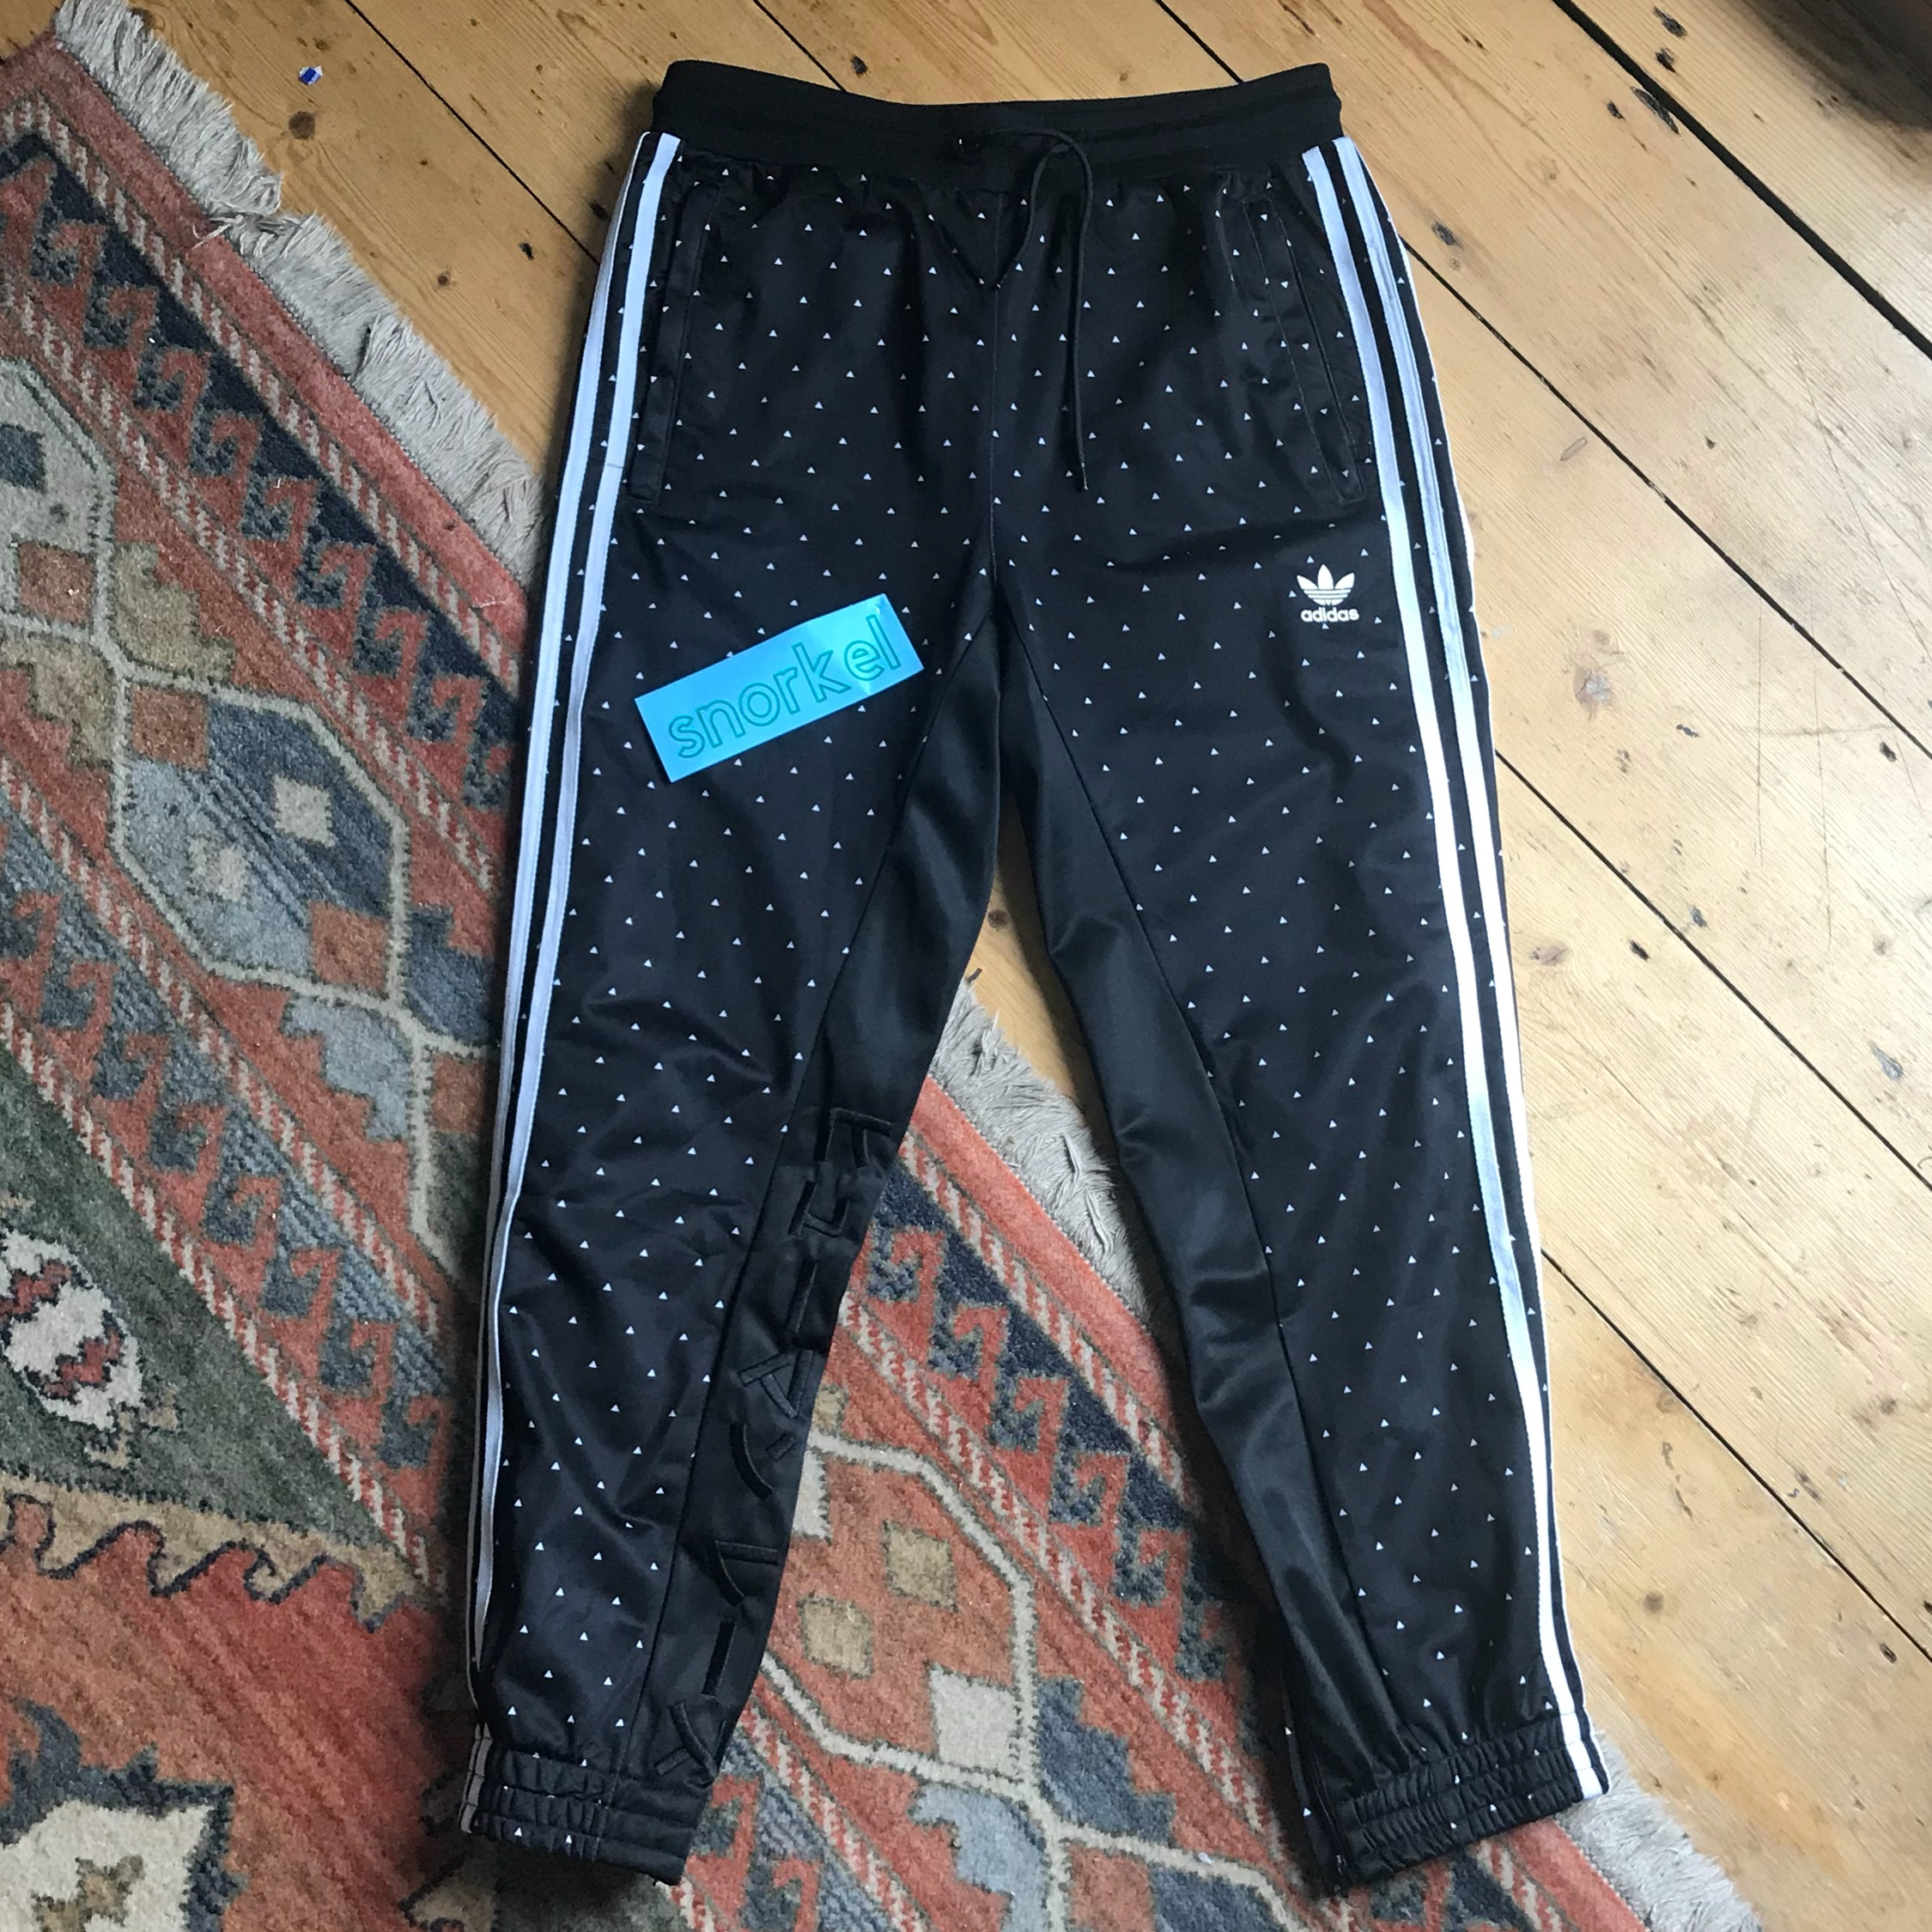 adidas hu race carrot pant sizing